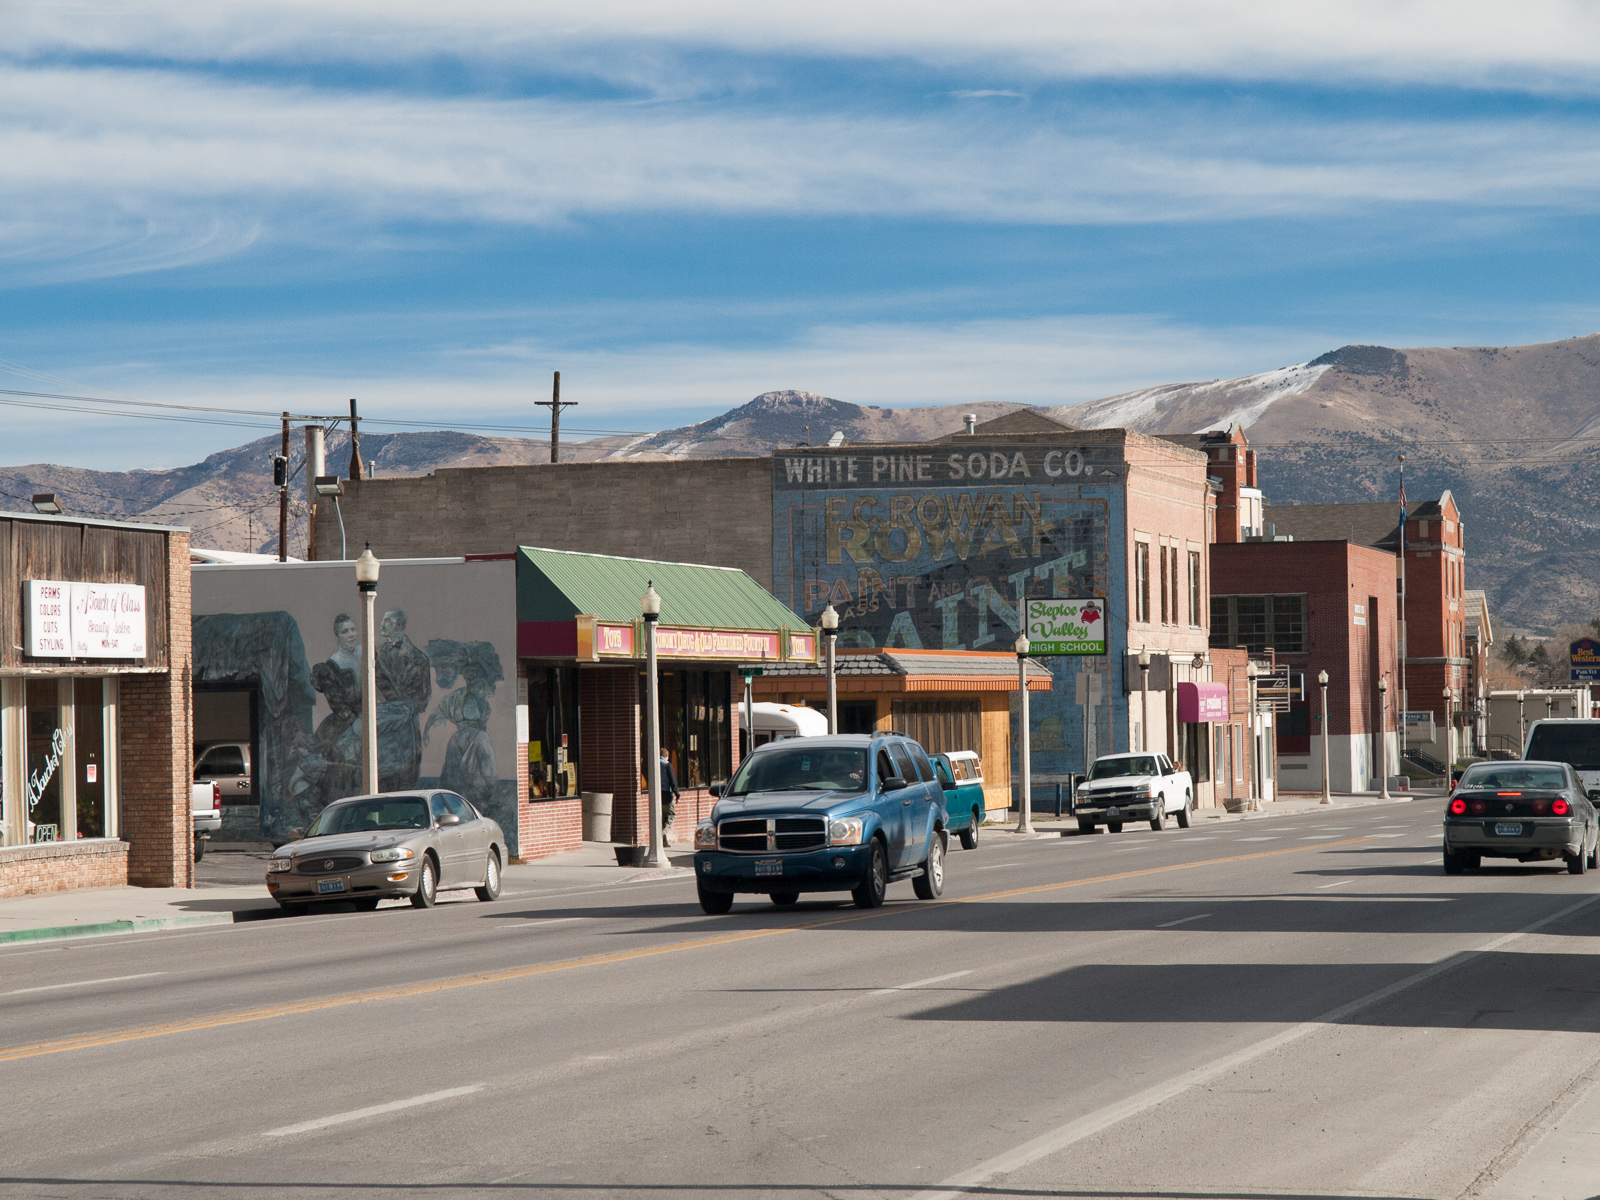 Downtown Ely, Nevada